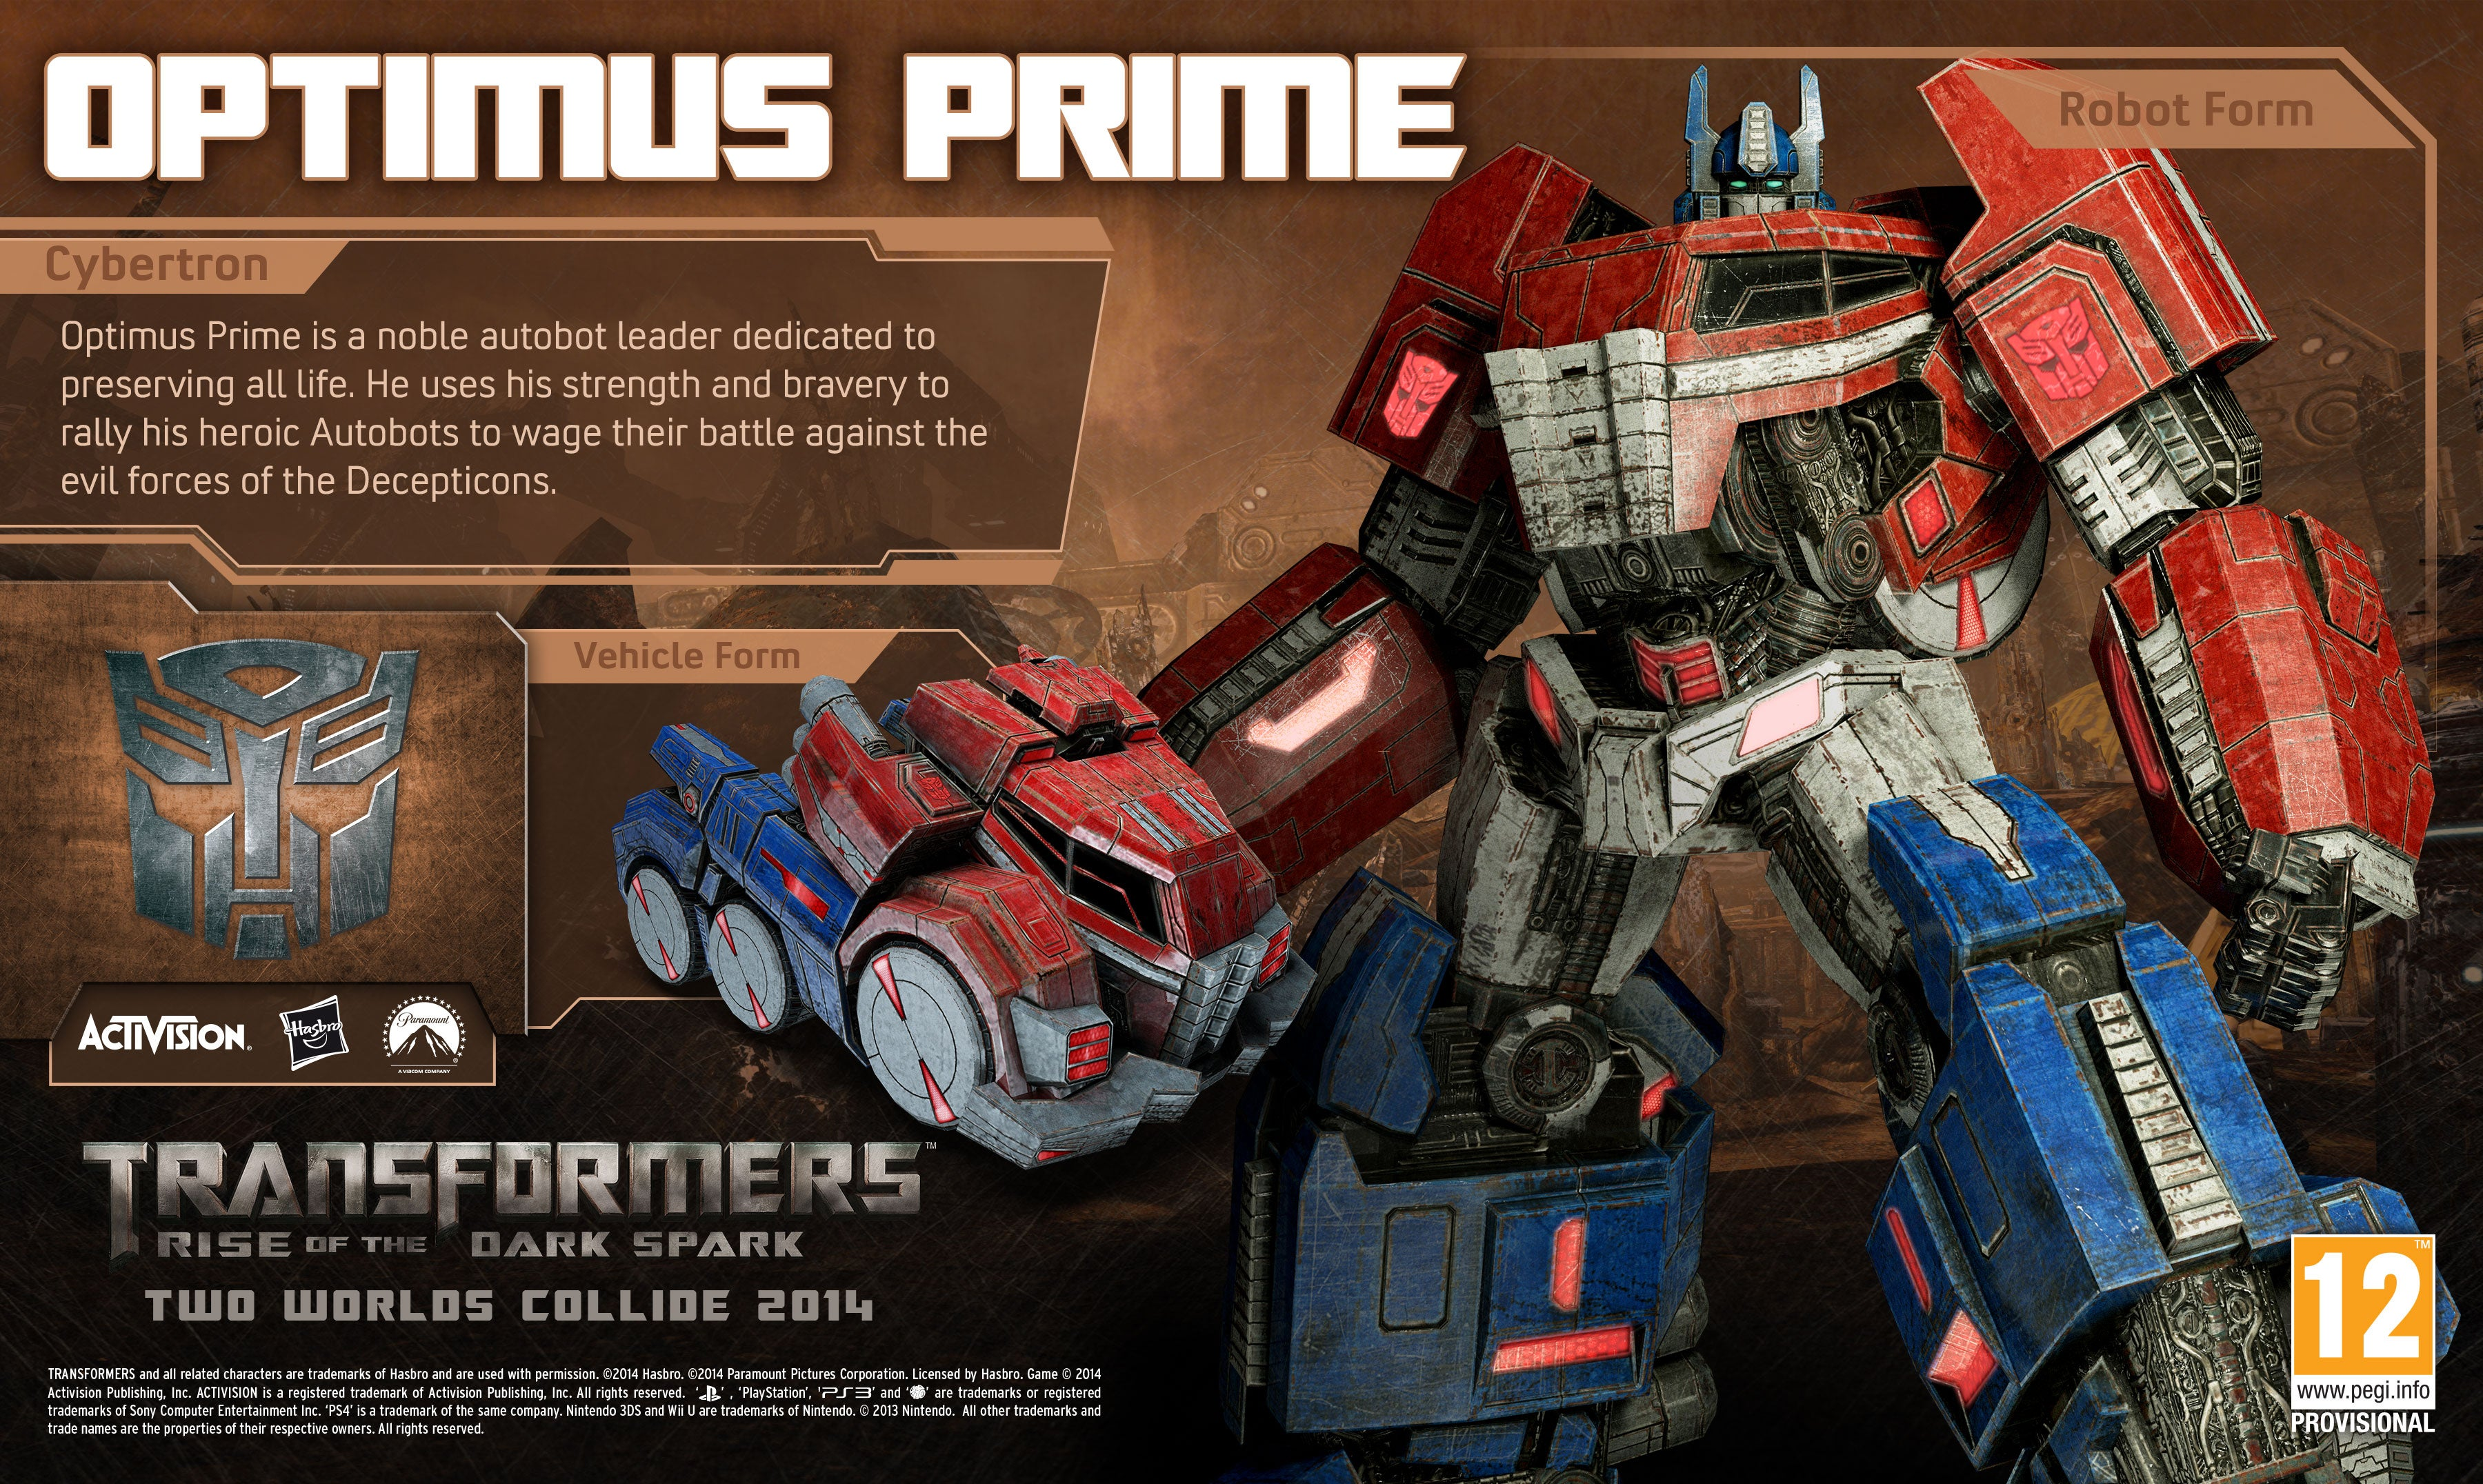 Rise Of The Dark Spark Is A Tale Of Three Optimus Primes